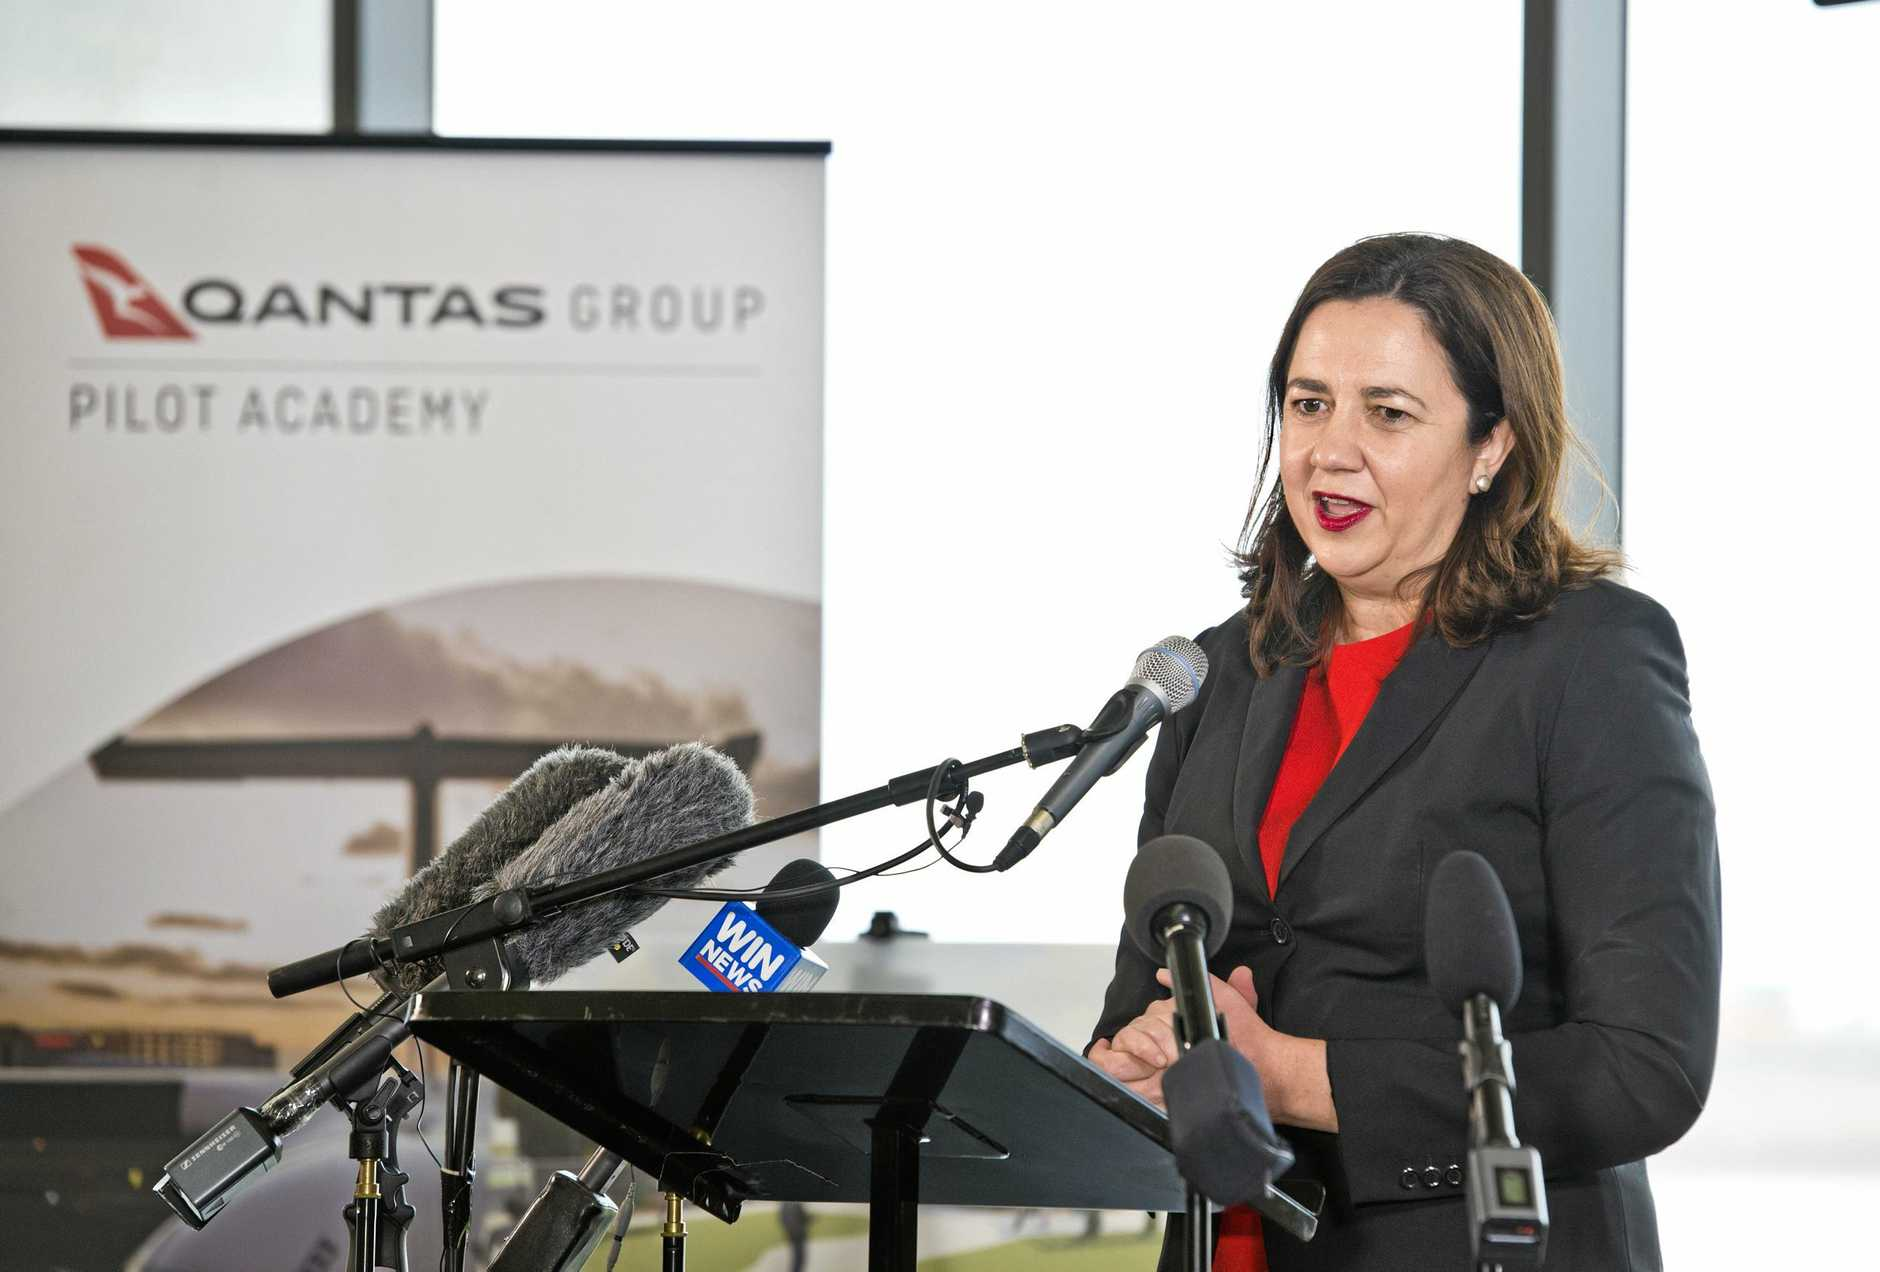 Qld Premier Annastacia Palaszczuk. Qantas pilot training academy announced for Wellcamp airport. Thursday, 27th Sep, 2018.